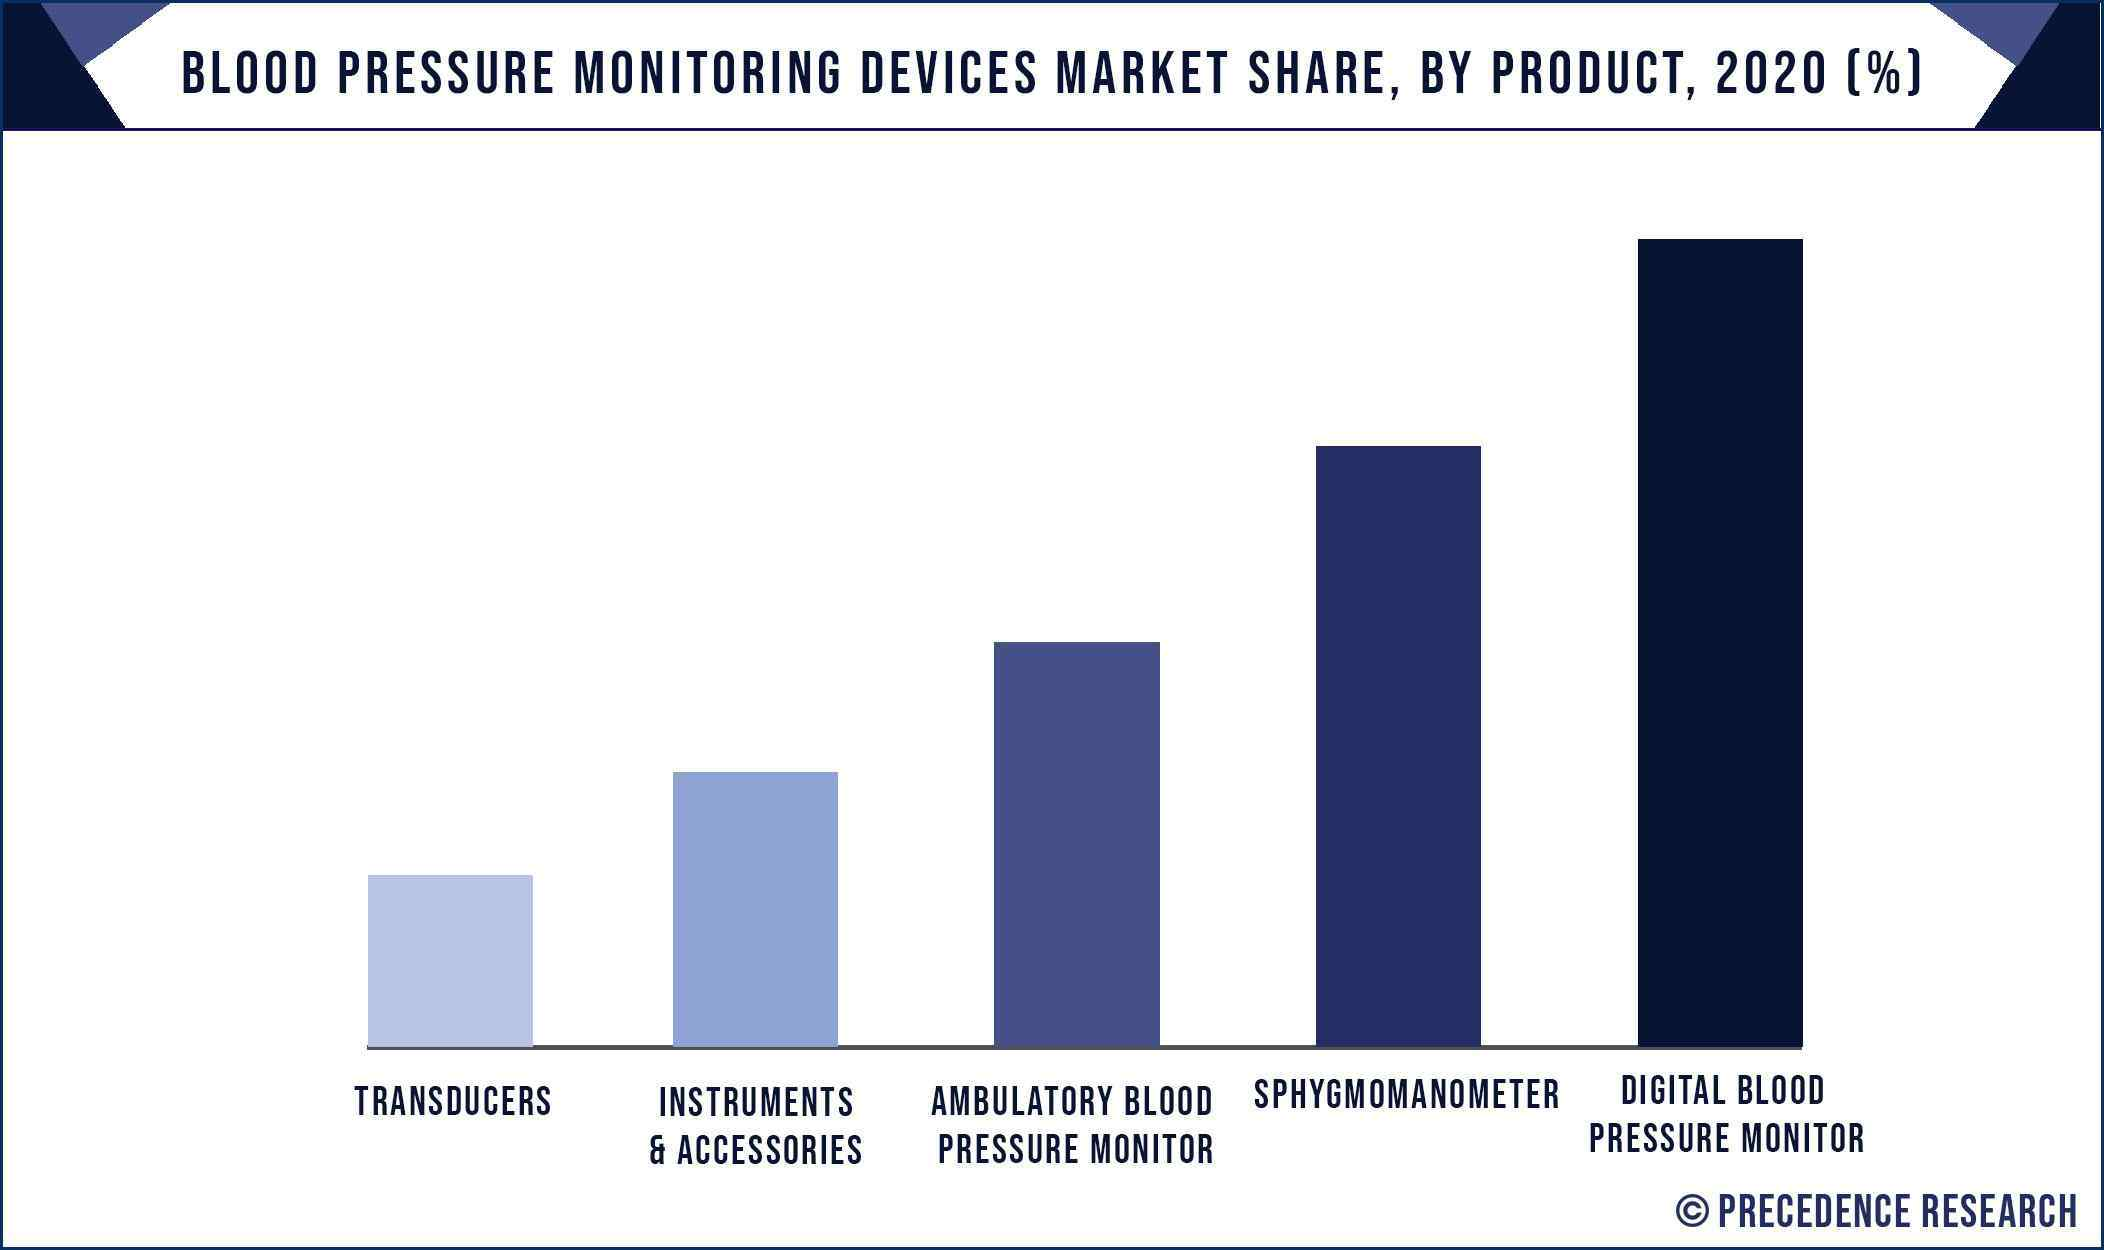 Blood Pressure Monitoring Devices Market Share, By Product, 2020 (%)